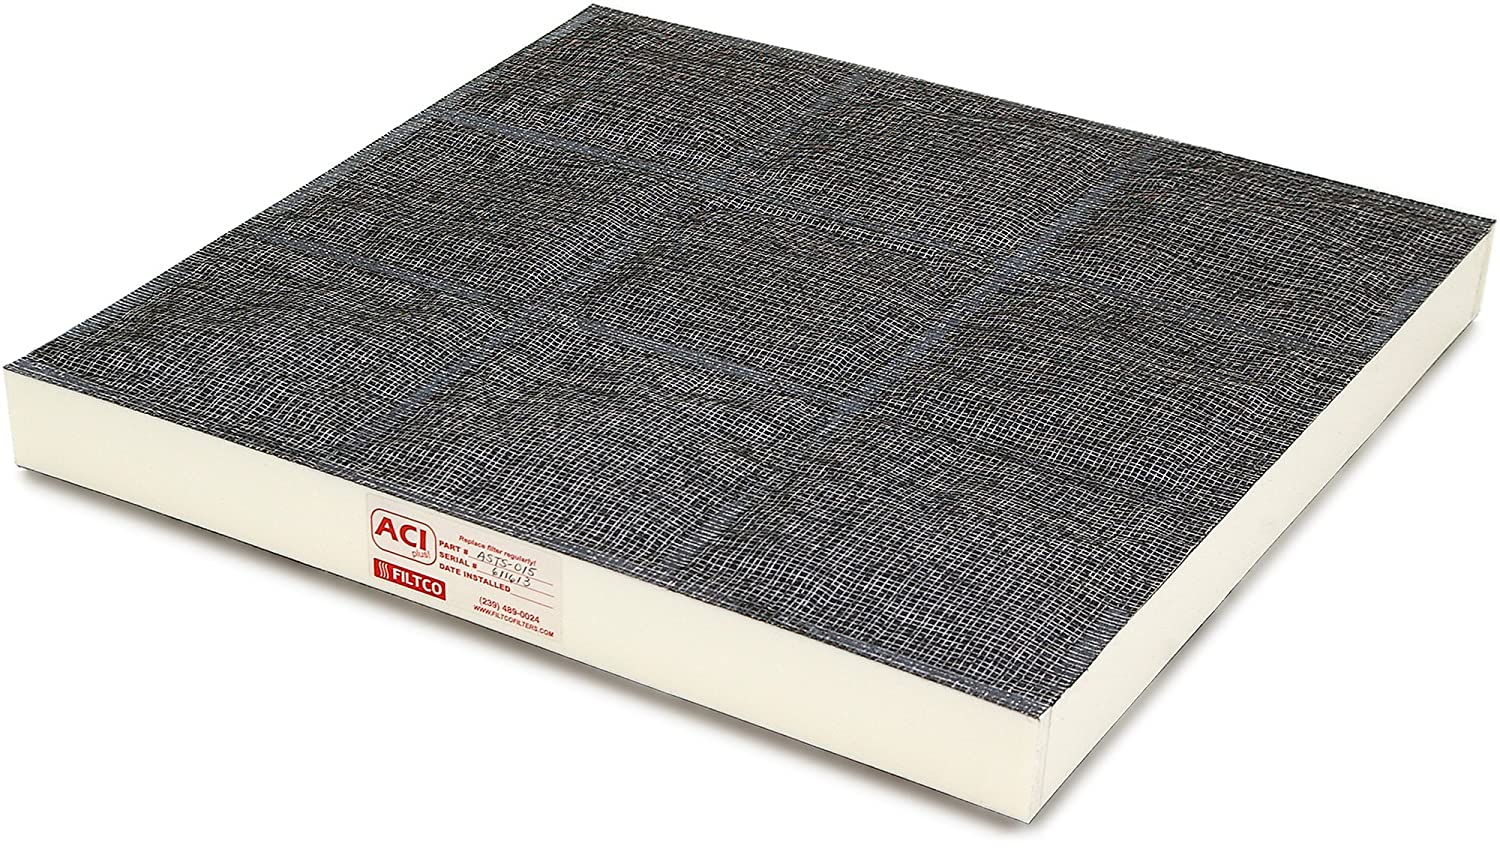 Purair Basic ASTS-015 ACI Carbon Filter Plus All Max 46% OFF stores are sold